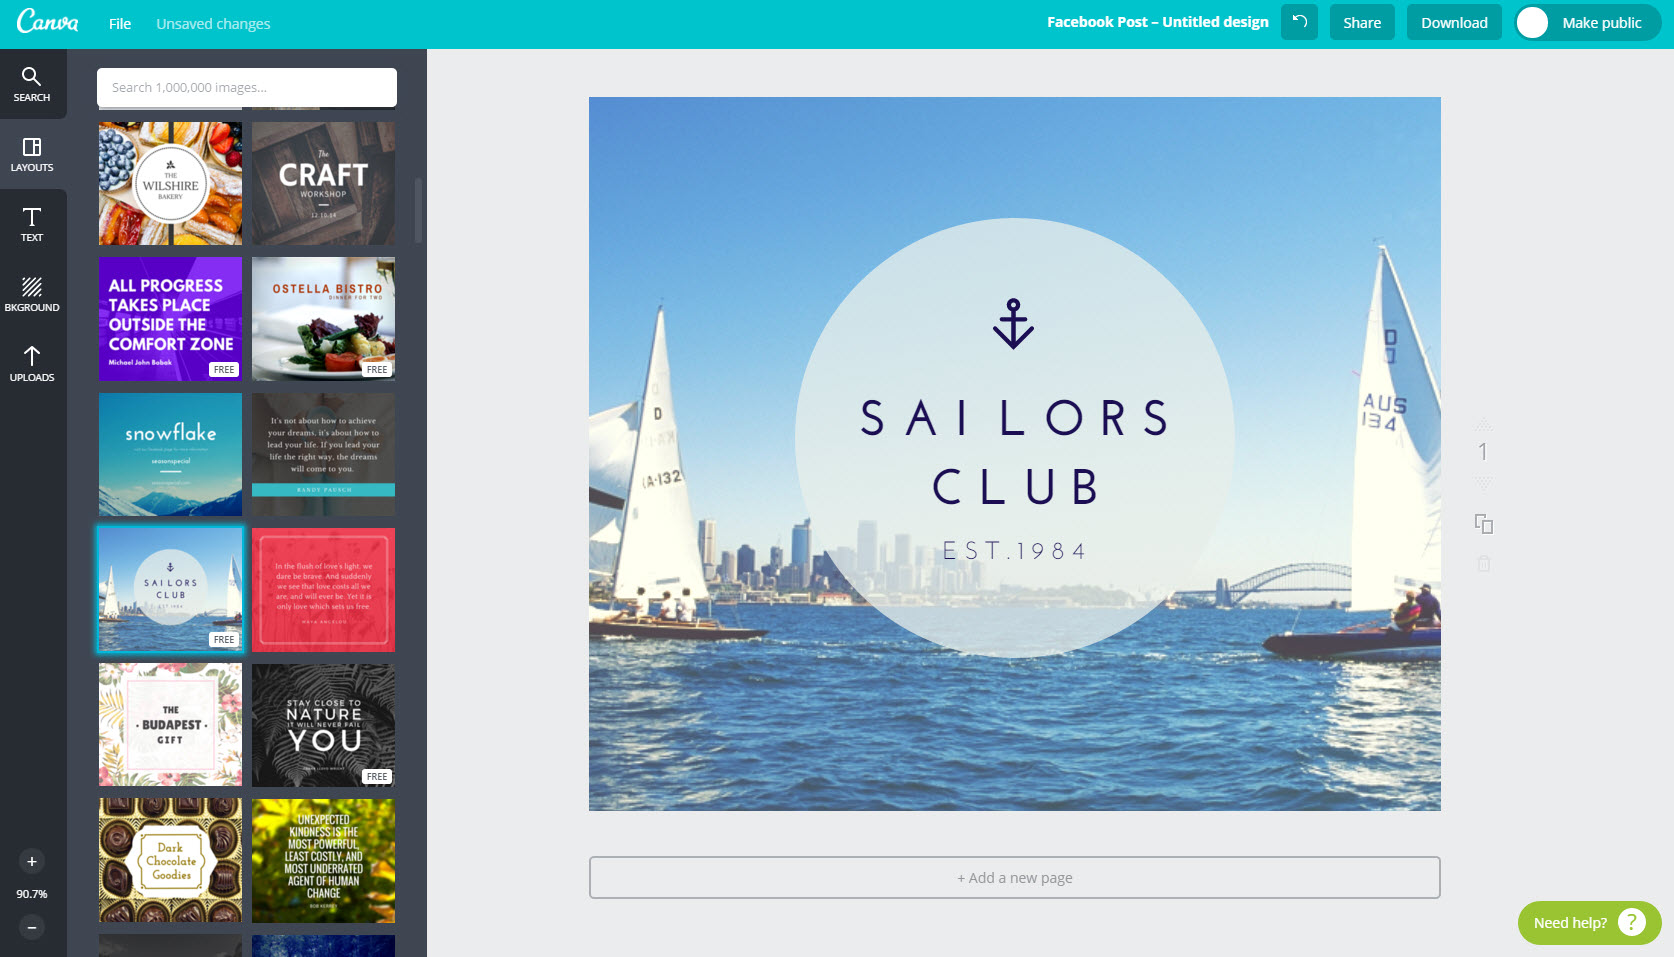 Improve Social Media Visuals With Canva Decoded By MDS